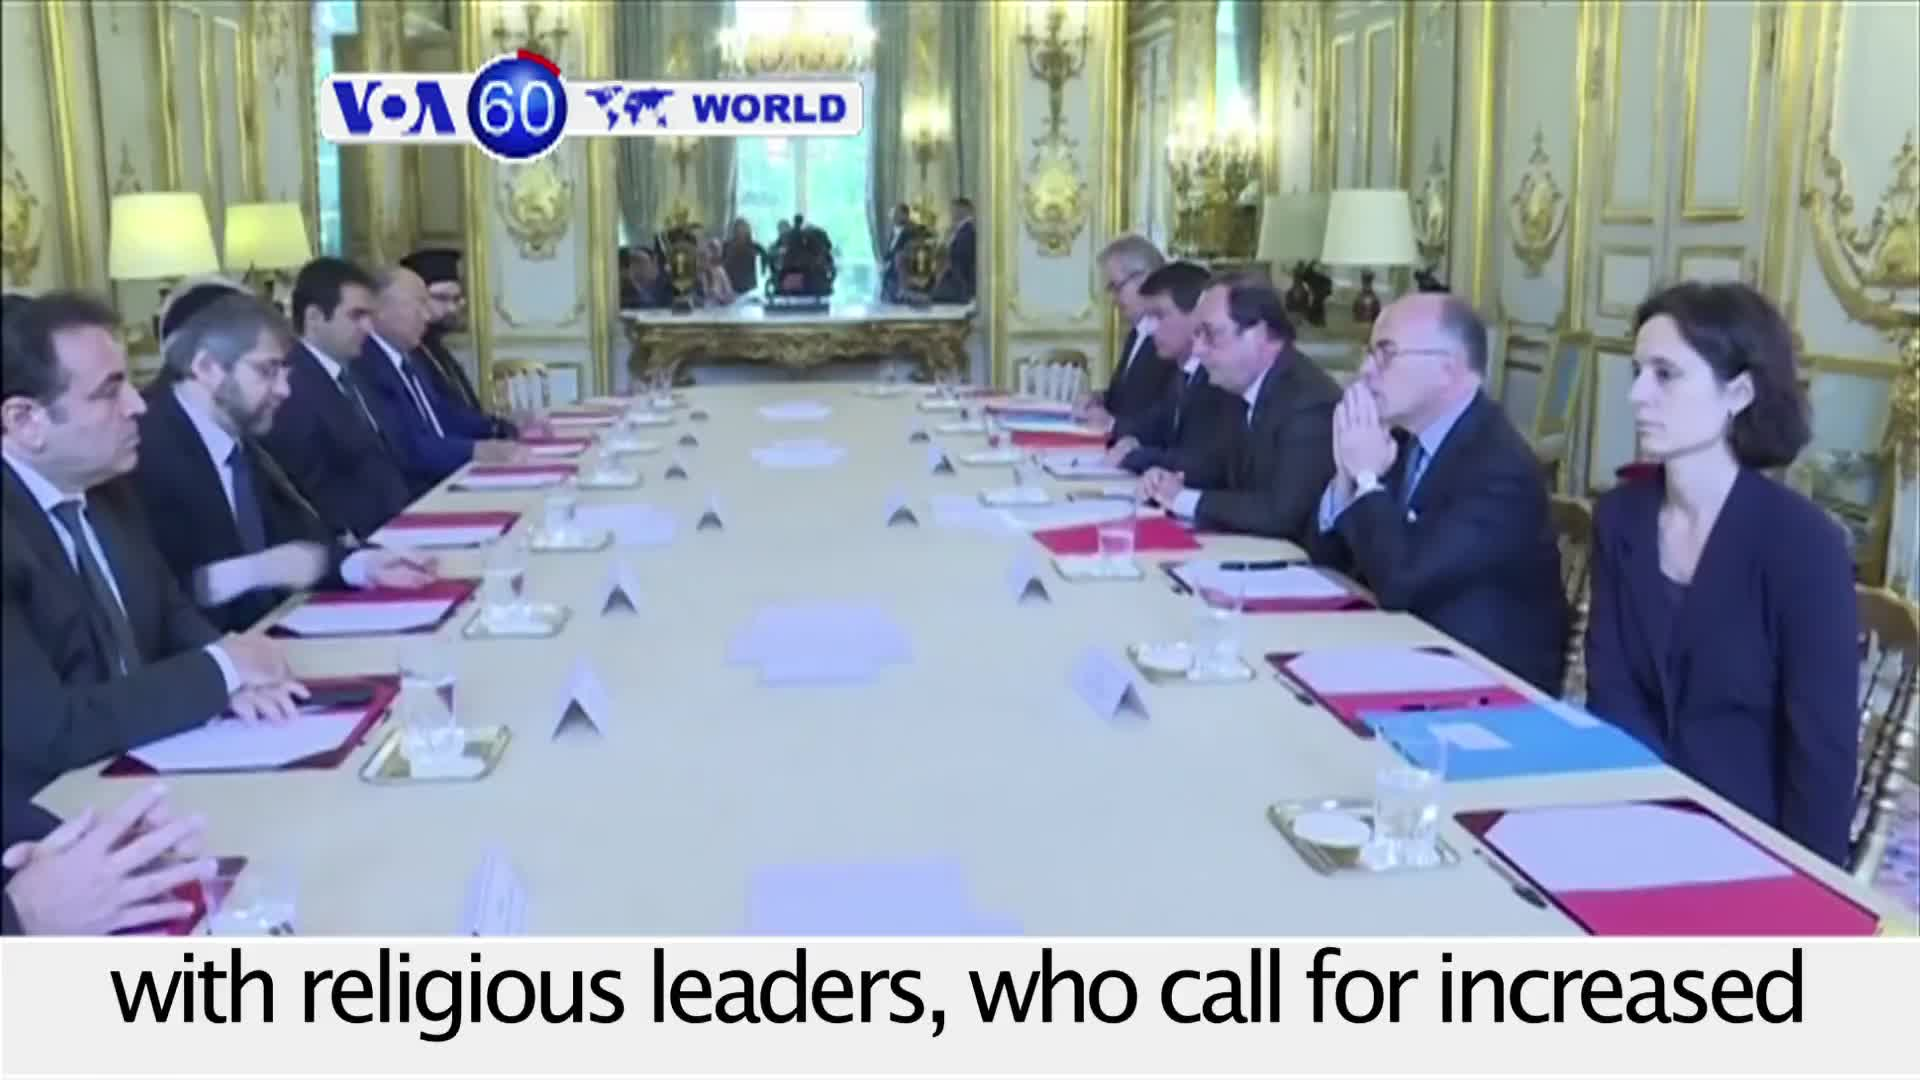 VOA60 World - French Religious Leaders Concerned After Latest Terror Attack